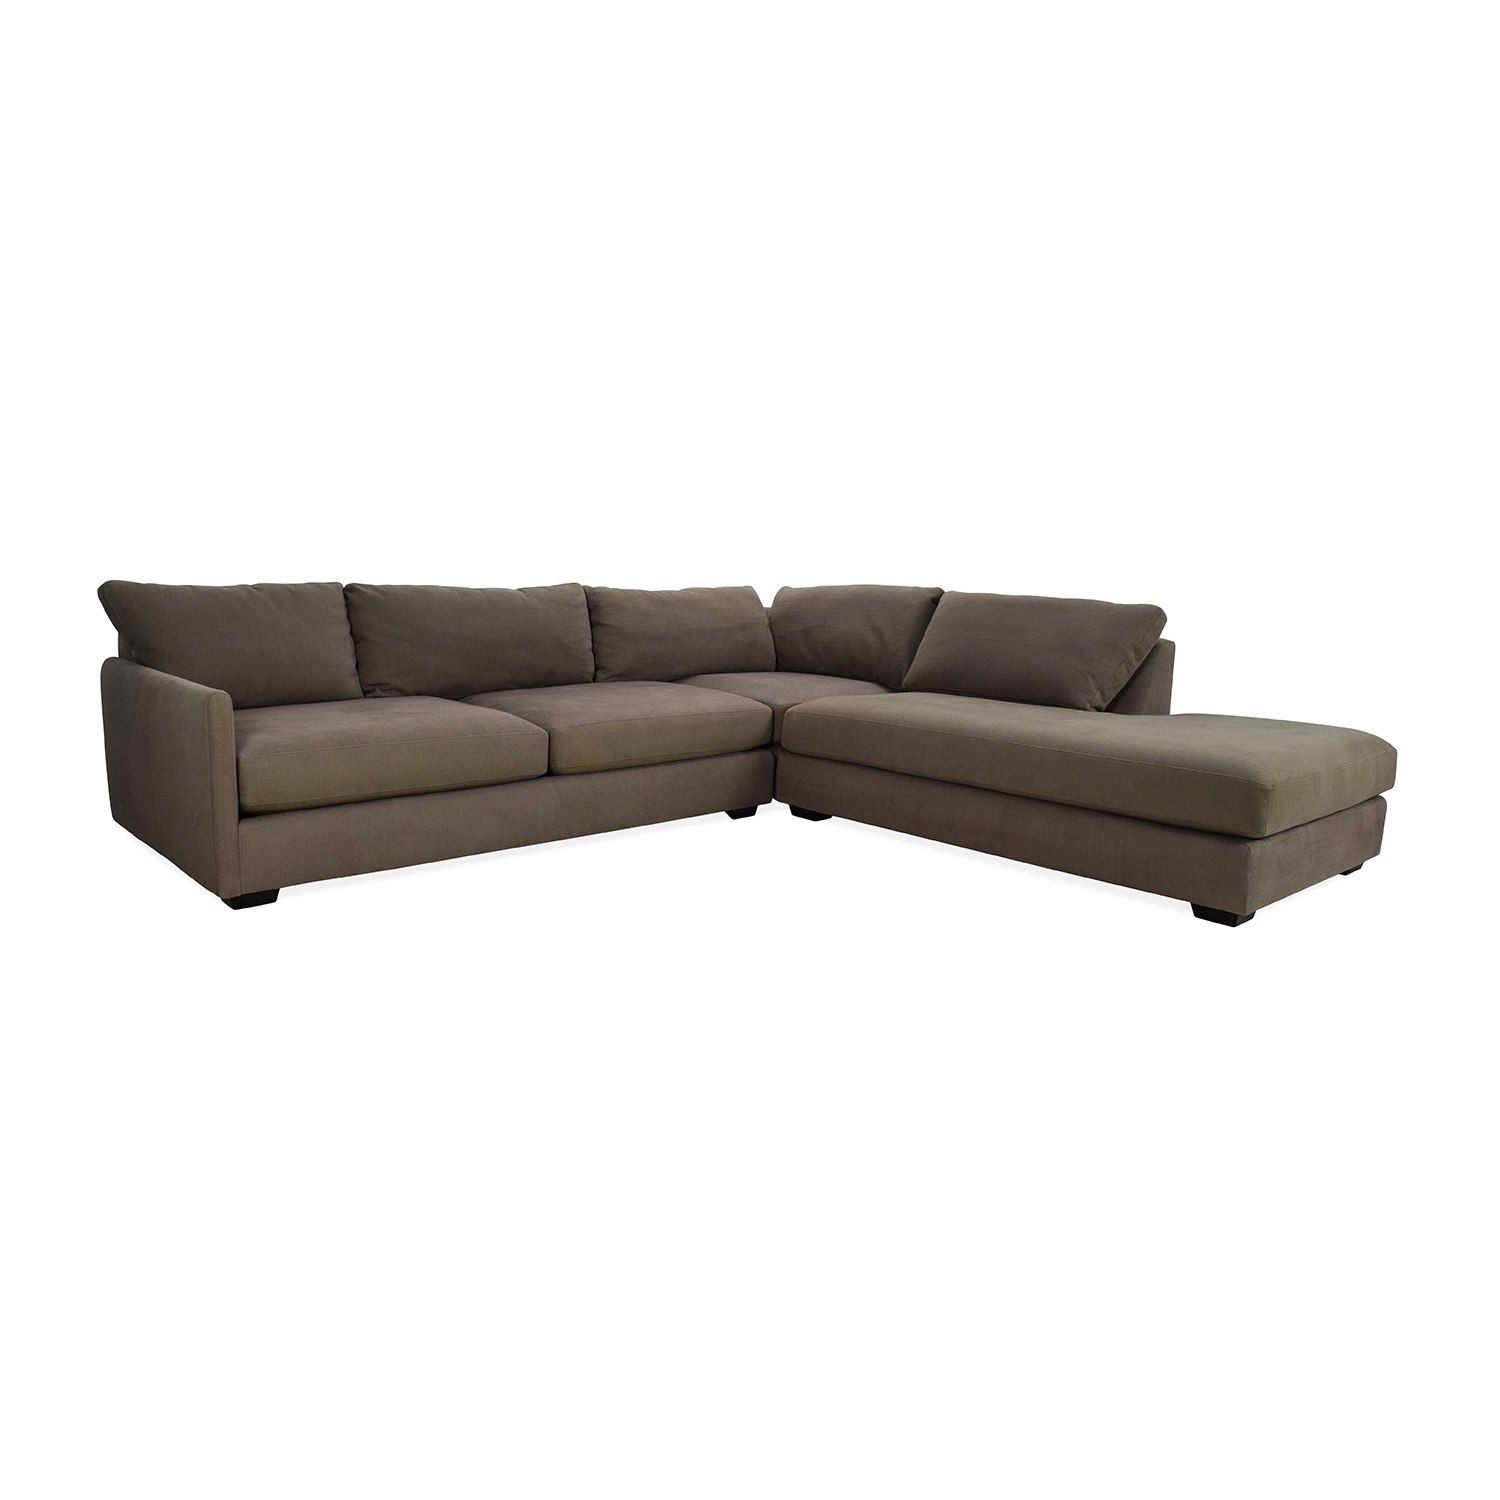 Crate And Barrel Crate & Barrel Domino Sectional